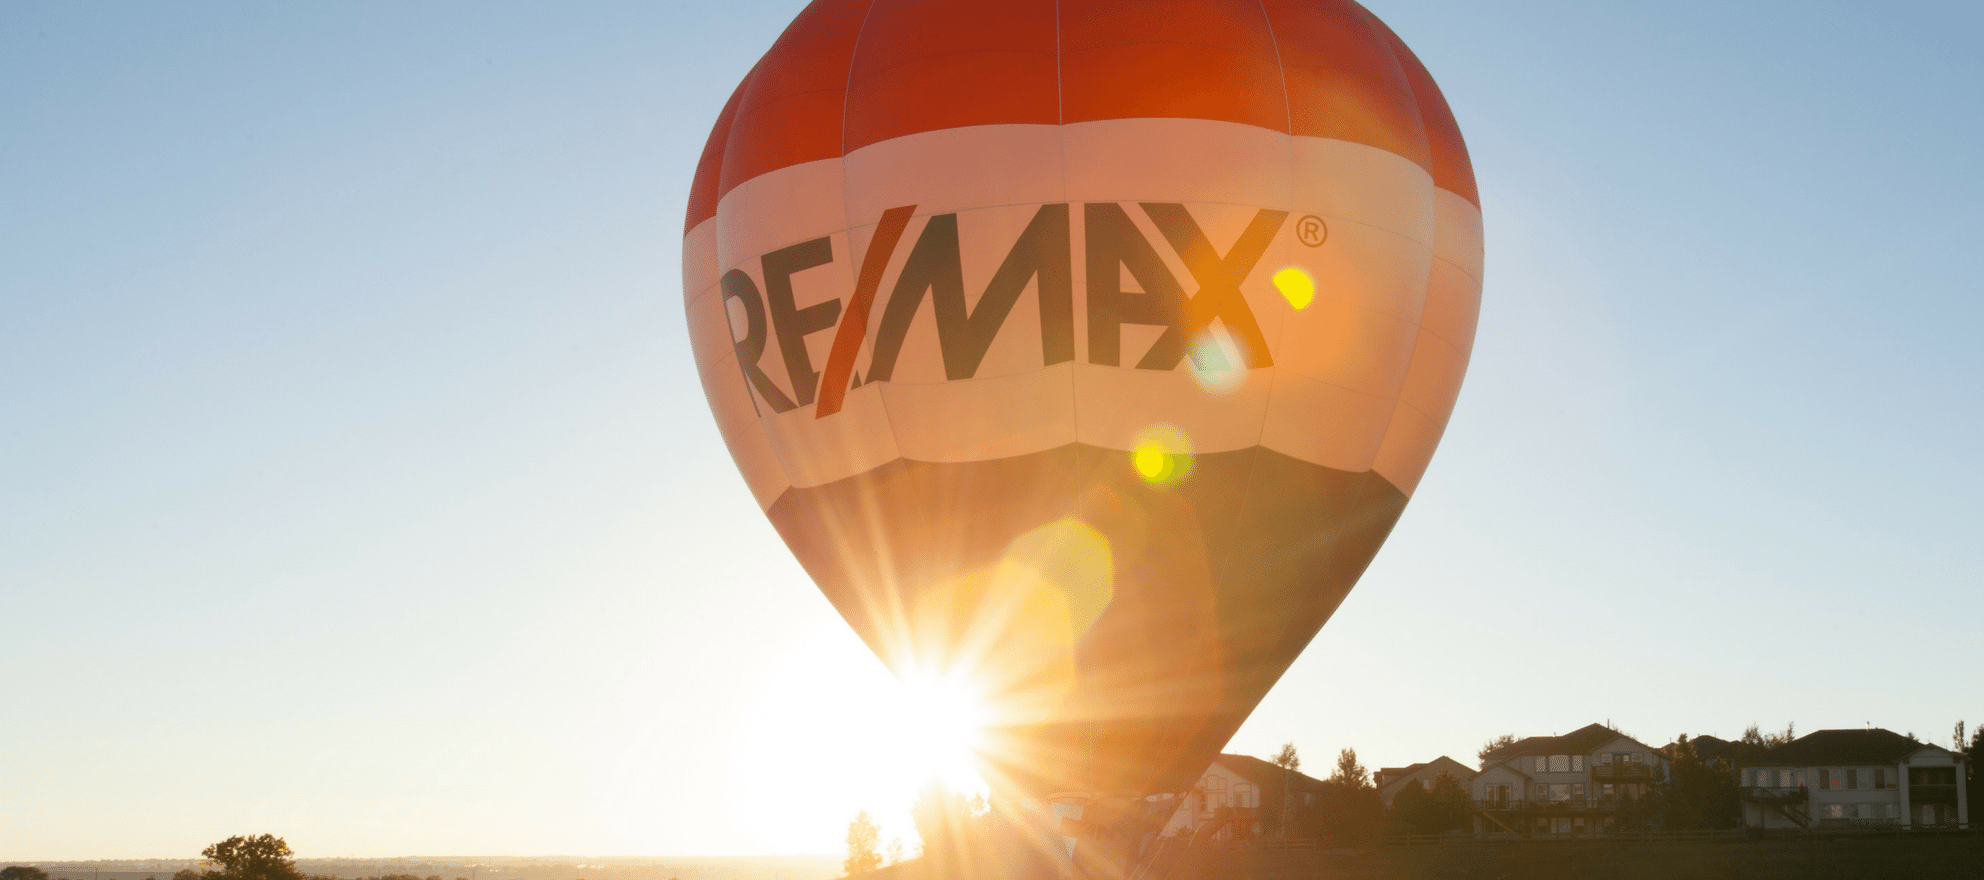 Re/Max finally releases earnings delayed due to investigation